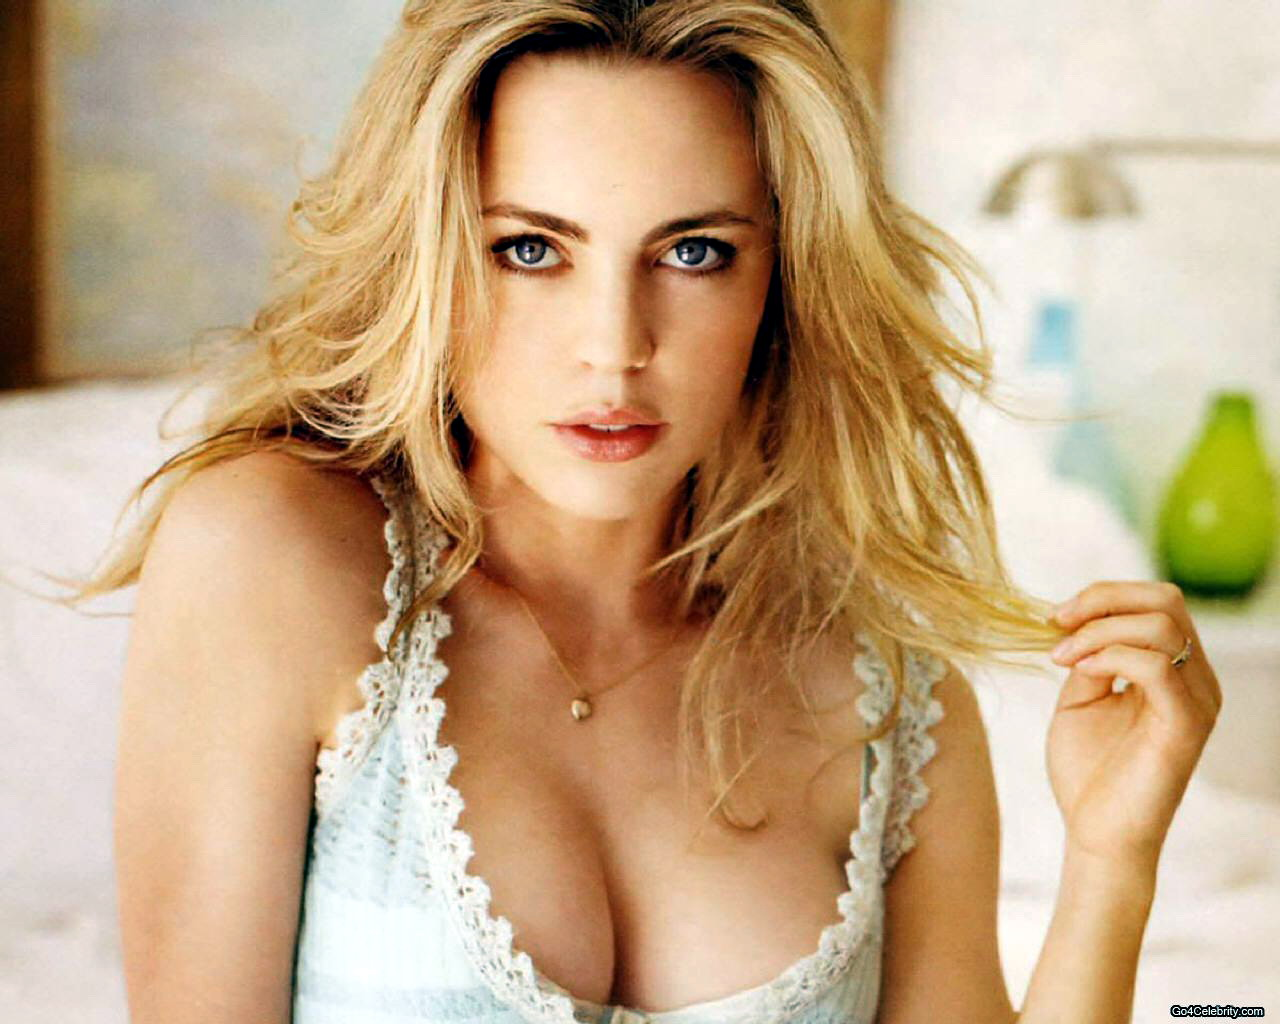 Pictures And Wallpapers Of Celebs Melissa George